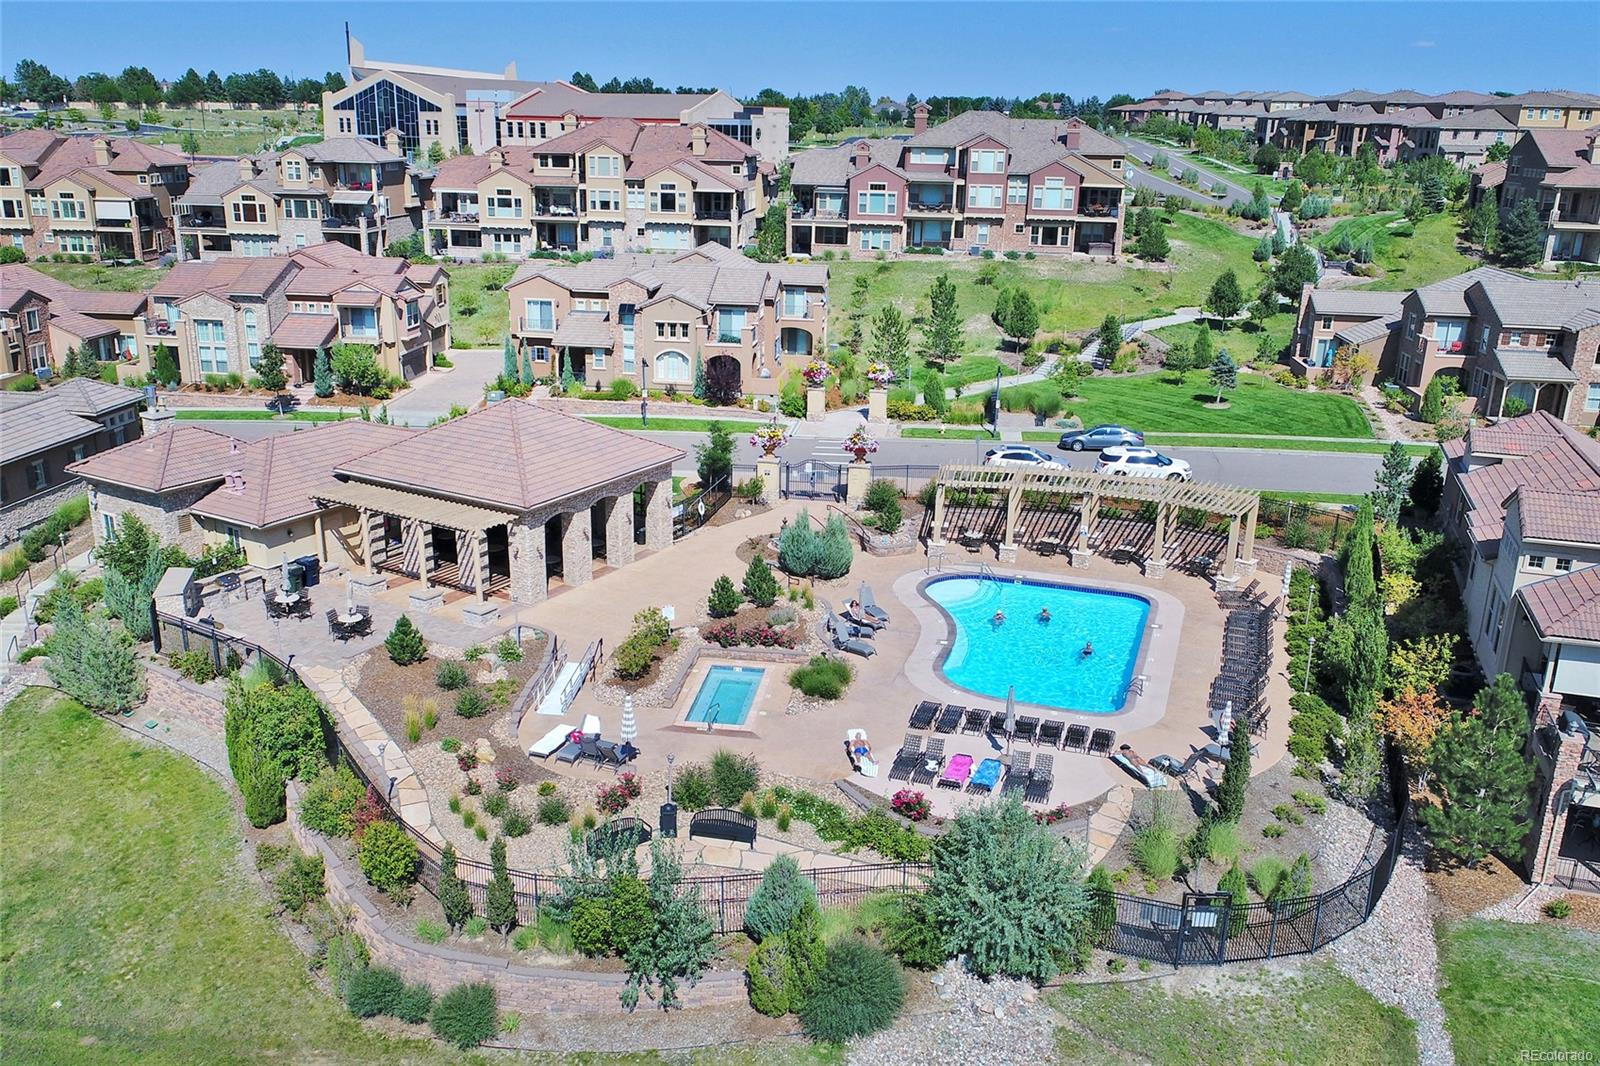 view from above the Tresana Pool, spa, outdoor grills, and covered piazza